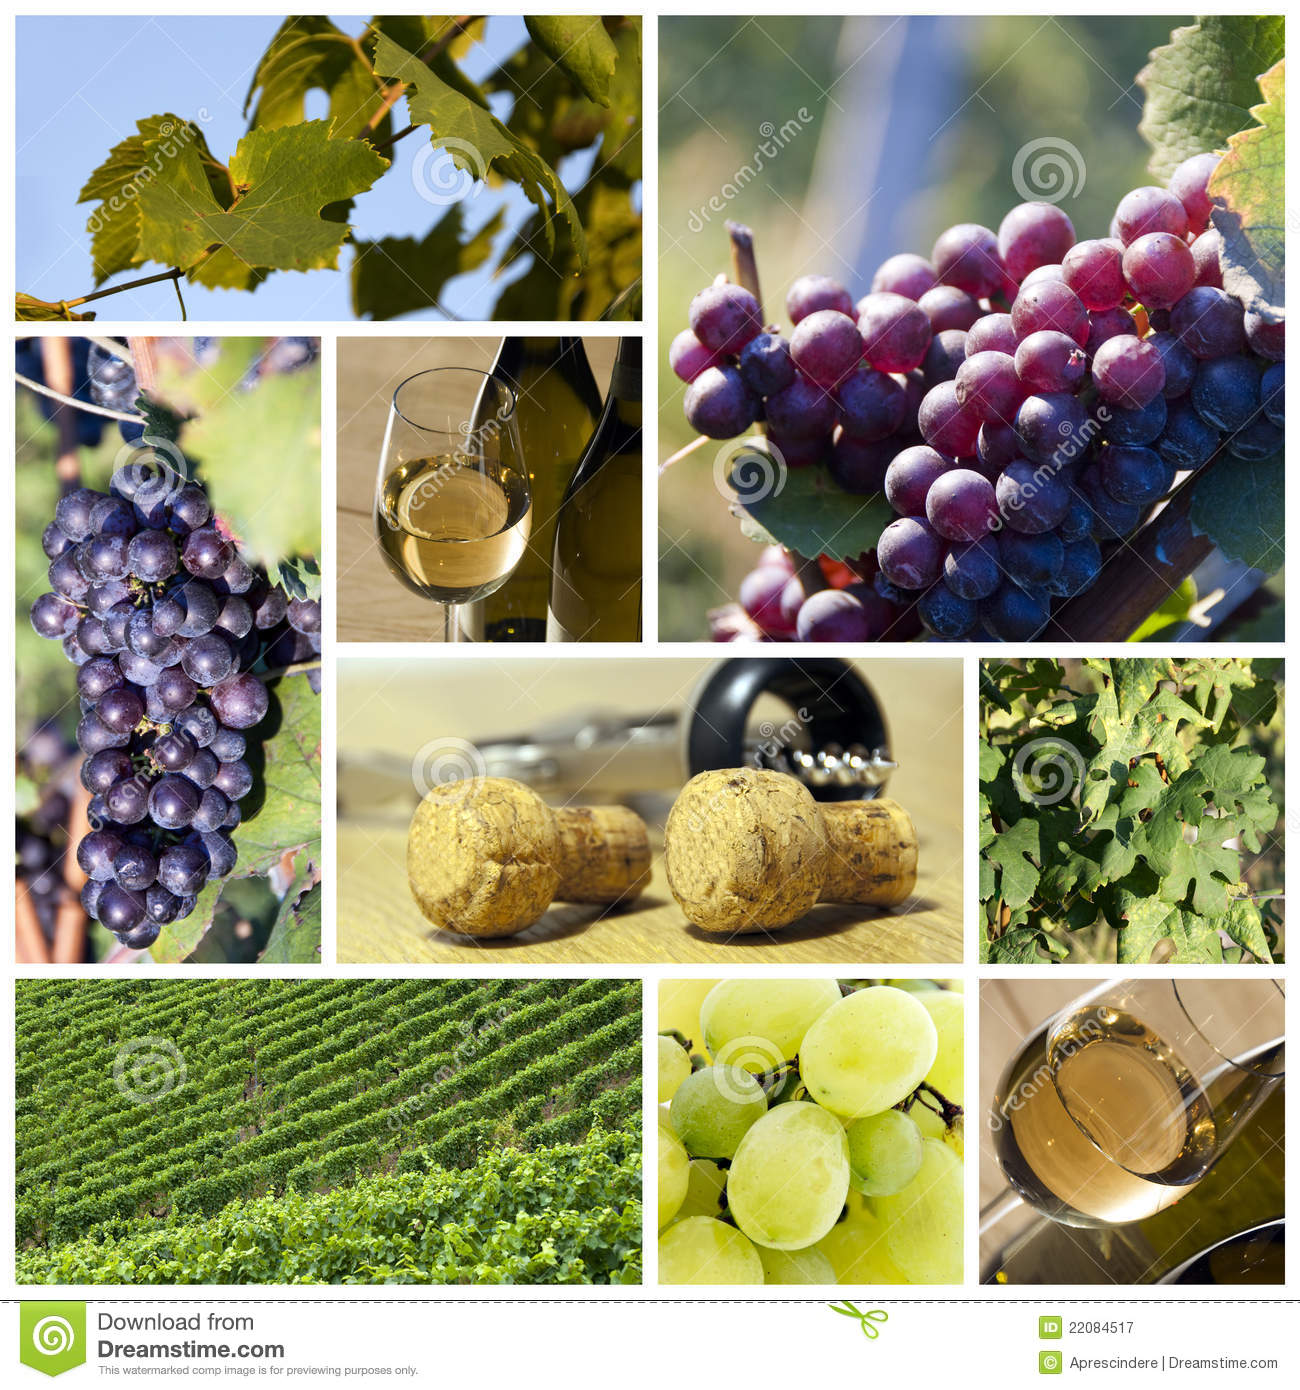 Wine and vineyard collage